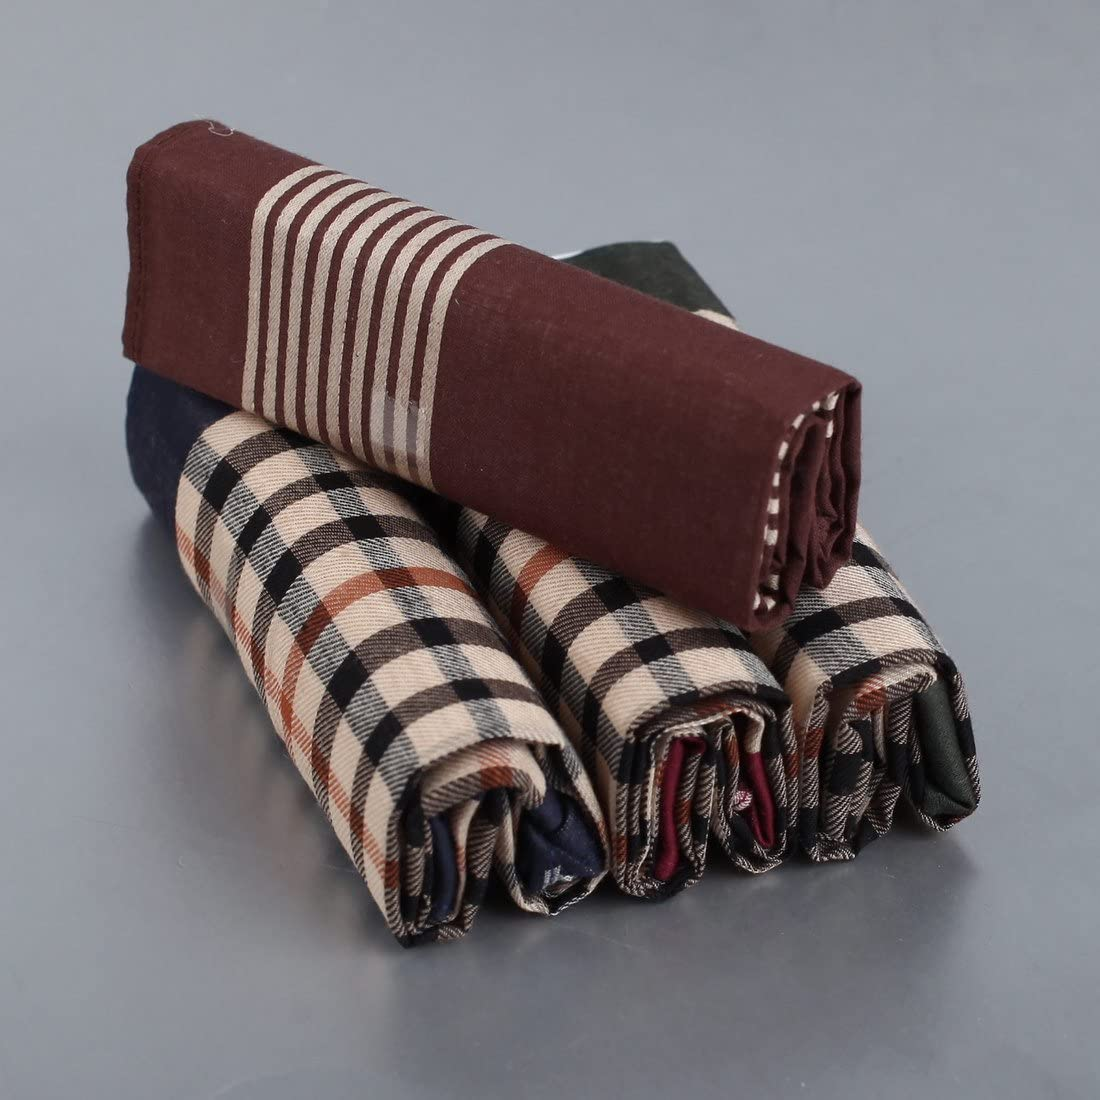 YEB0206 Grey Brown Solid England Style Pure Cotton Bridegrooms Gift 4 Pack Handkercheifs Set By Y/&G